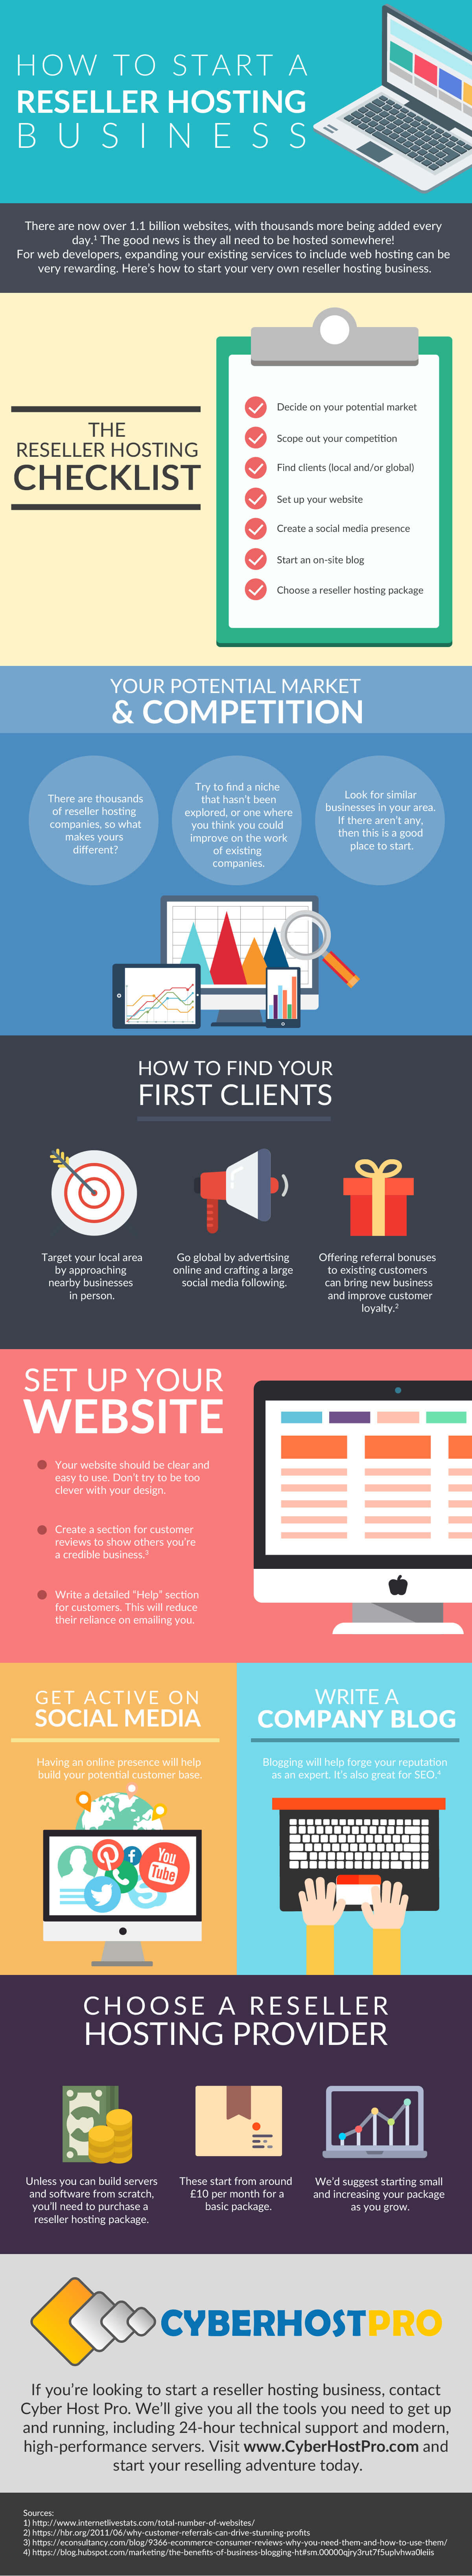 How-to-Start-the-World's-Best-Reseller-Hosting-Business-infographic-plaza